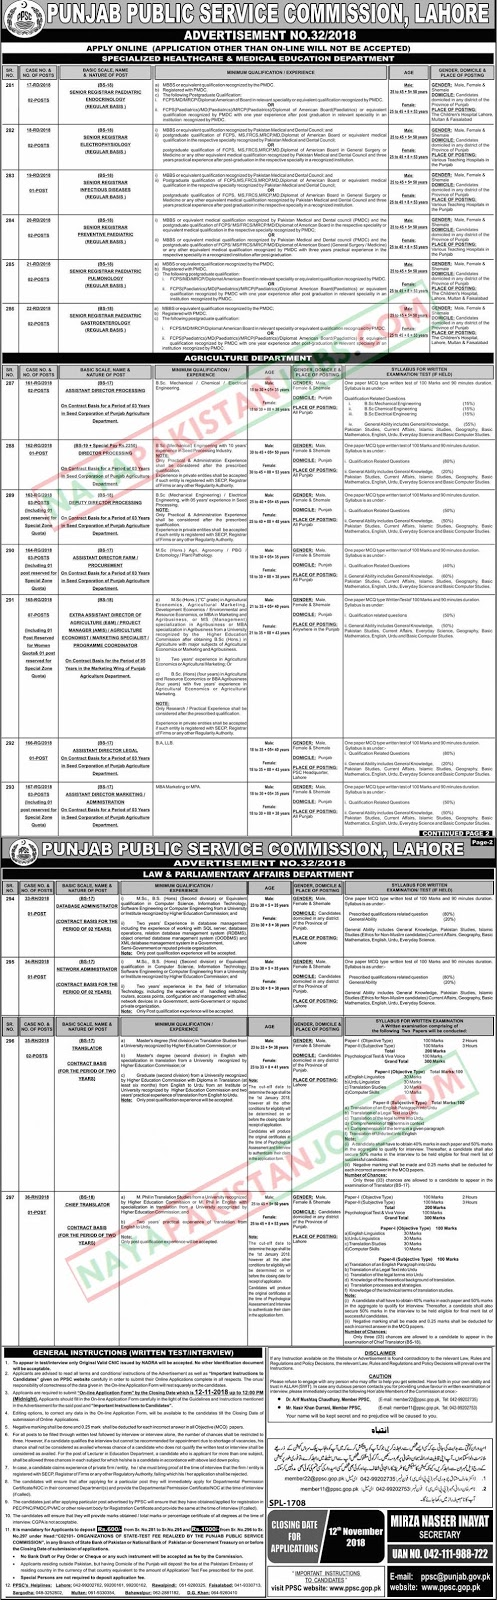 Latest Vacancies Announced in PPSC.GOP.PK Punjab Public Service Commission PPSC 28 October 2018 - Naya Pakistan